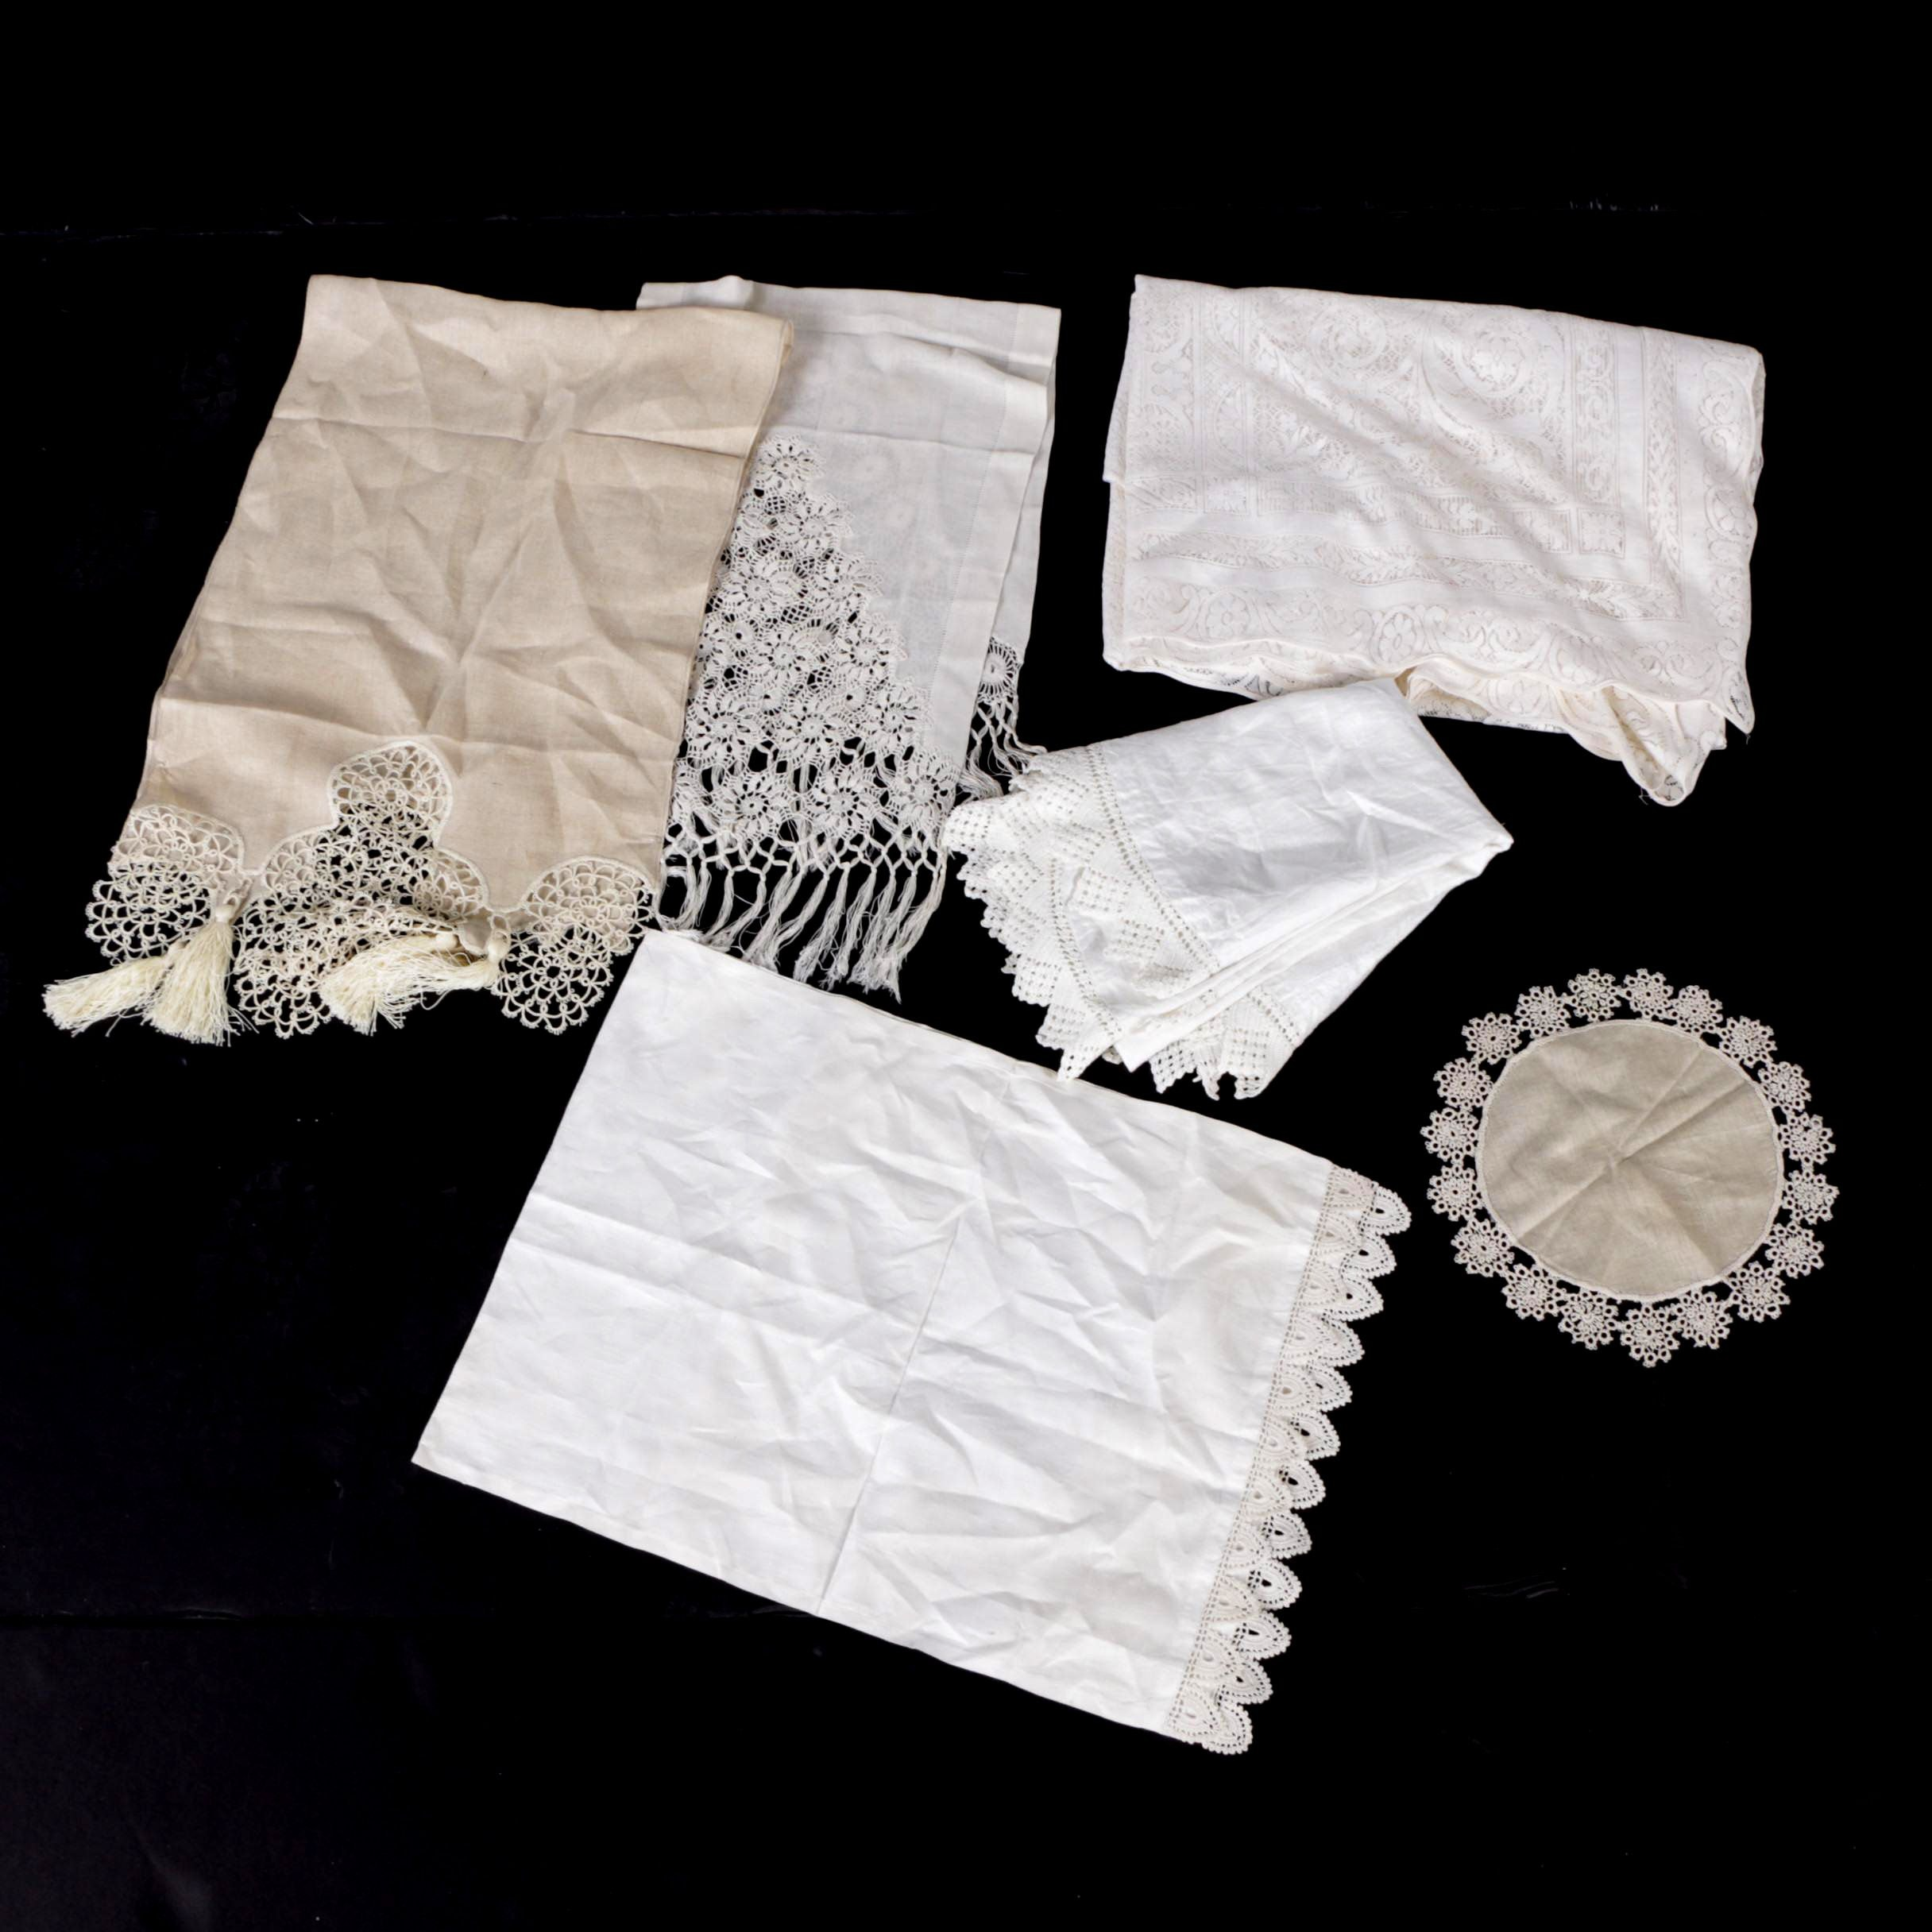 Lace-Trimmed Tablecloths, Table Runners, and Doilie